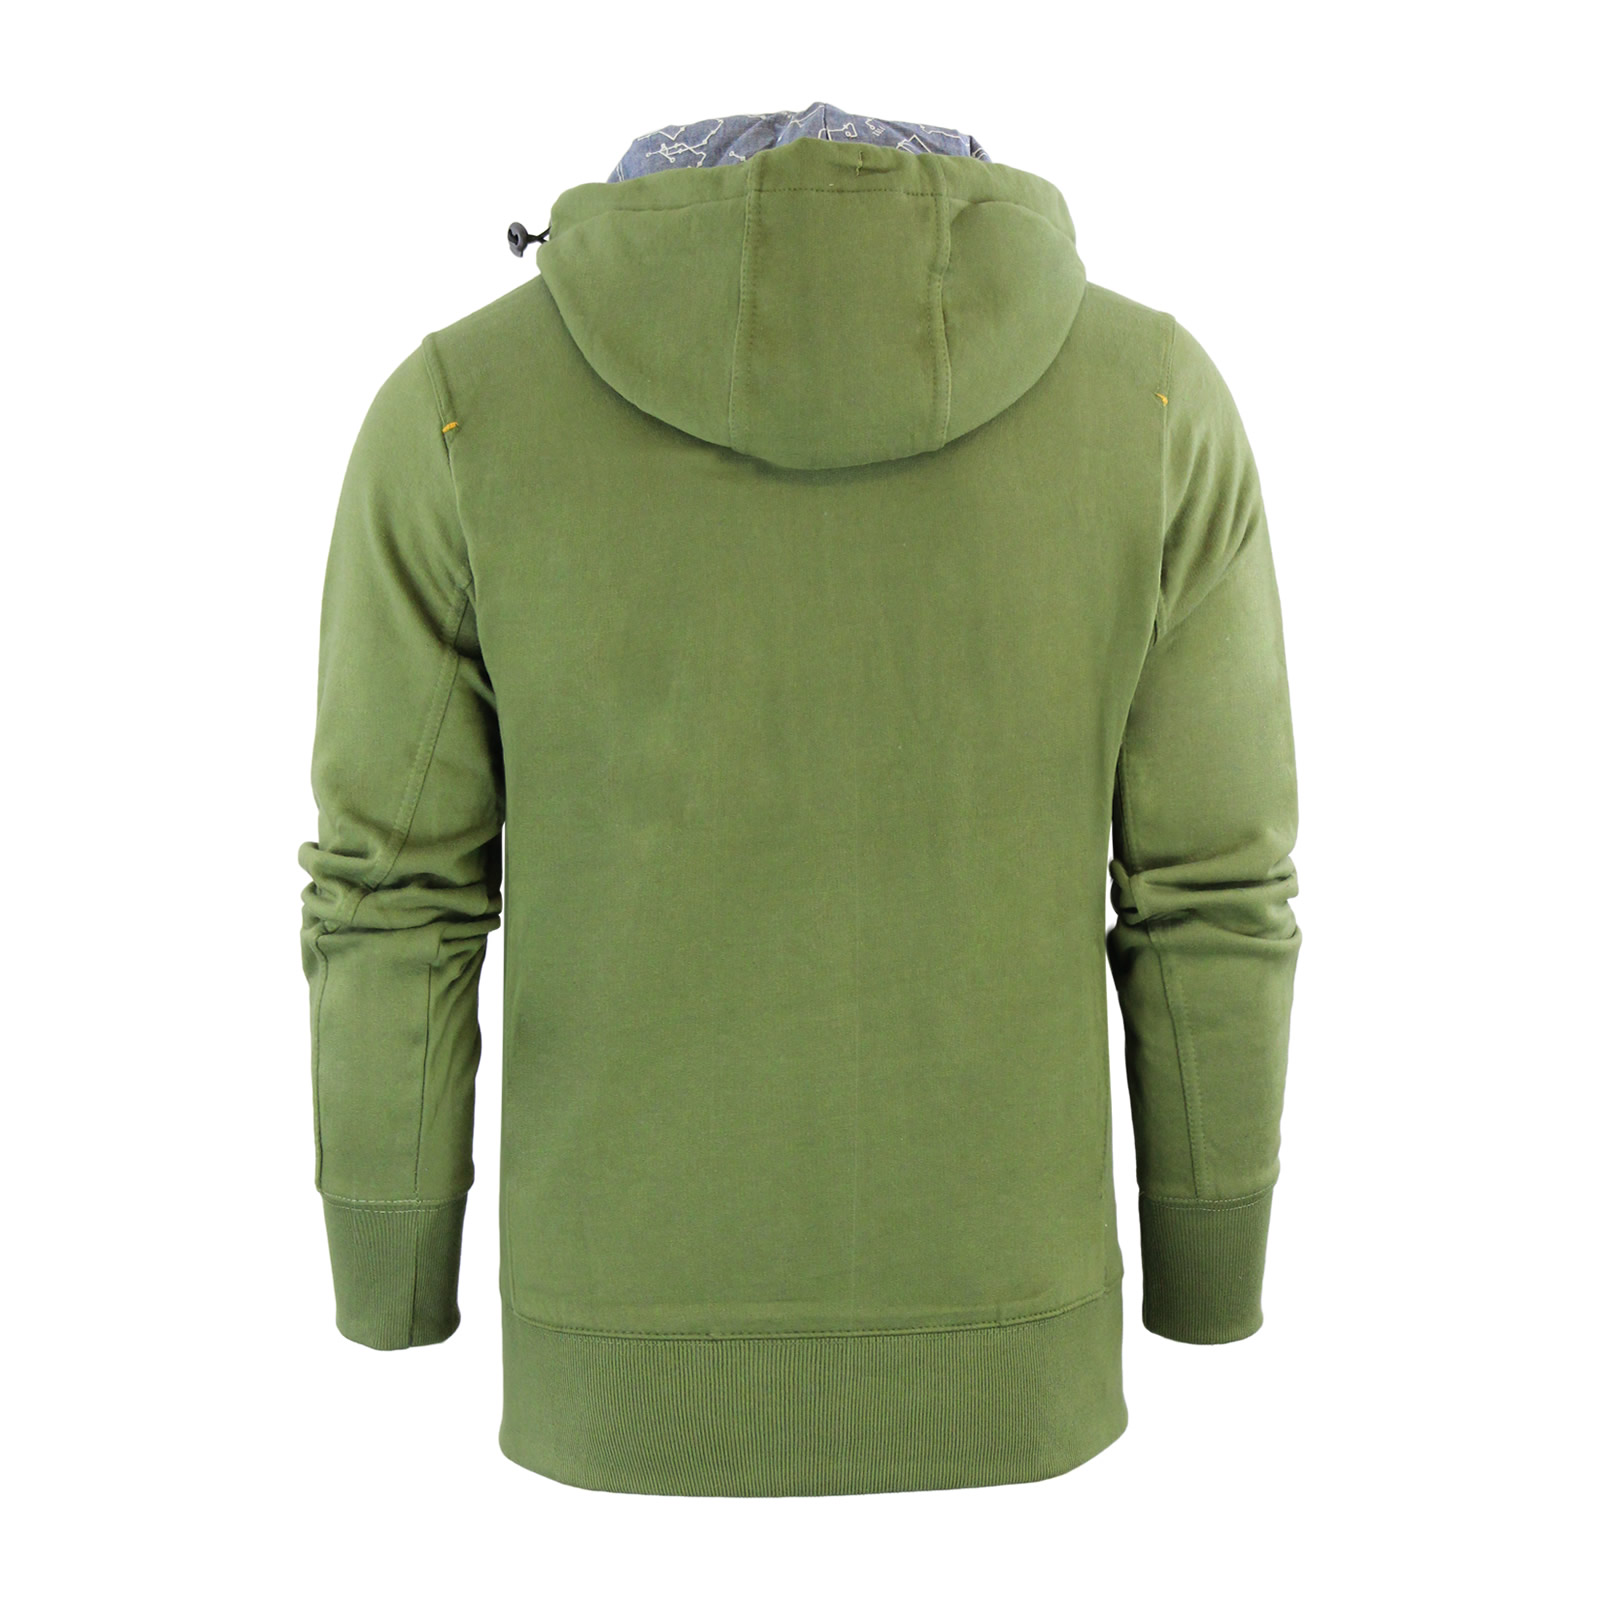 Mens Hoodie Firetrap Appach Zip Up Hooded Sweater | eBay